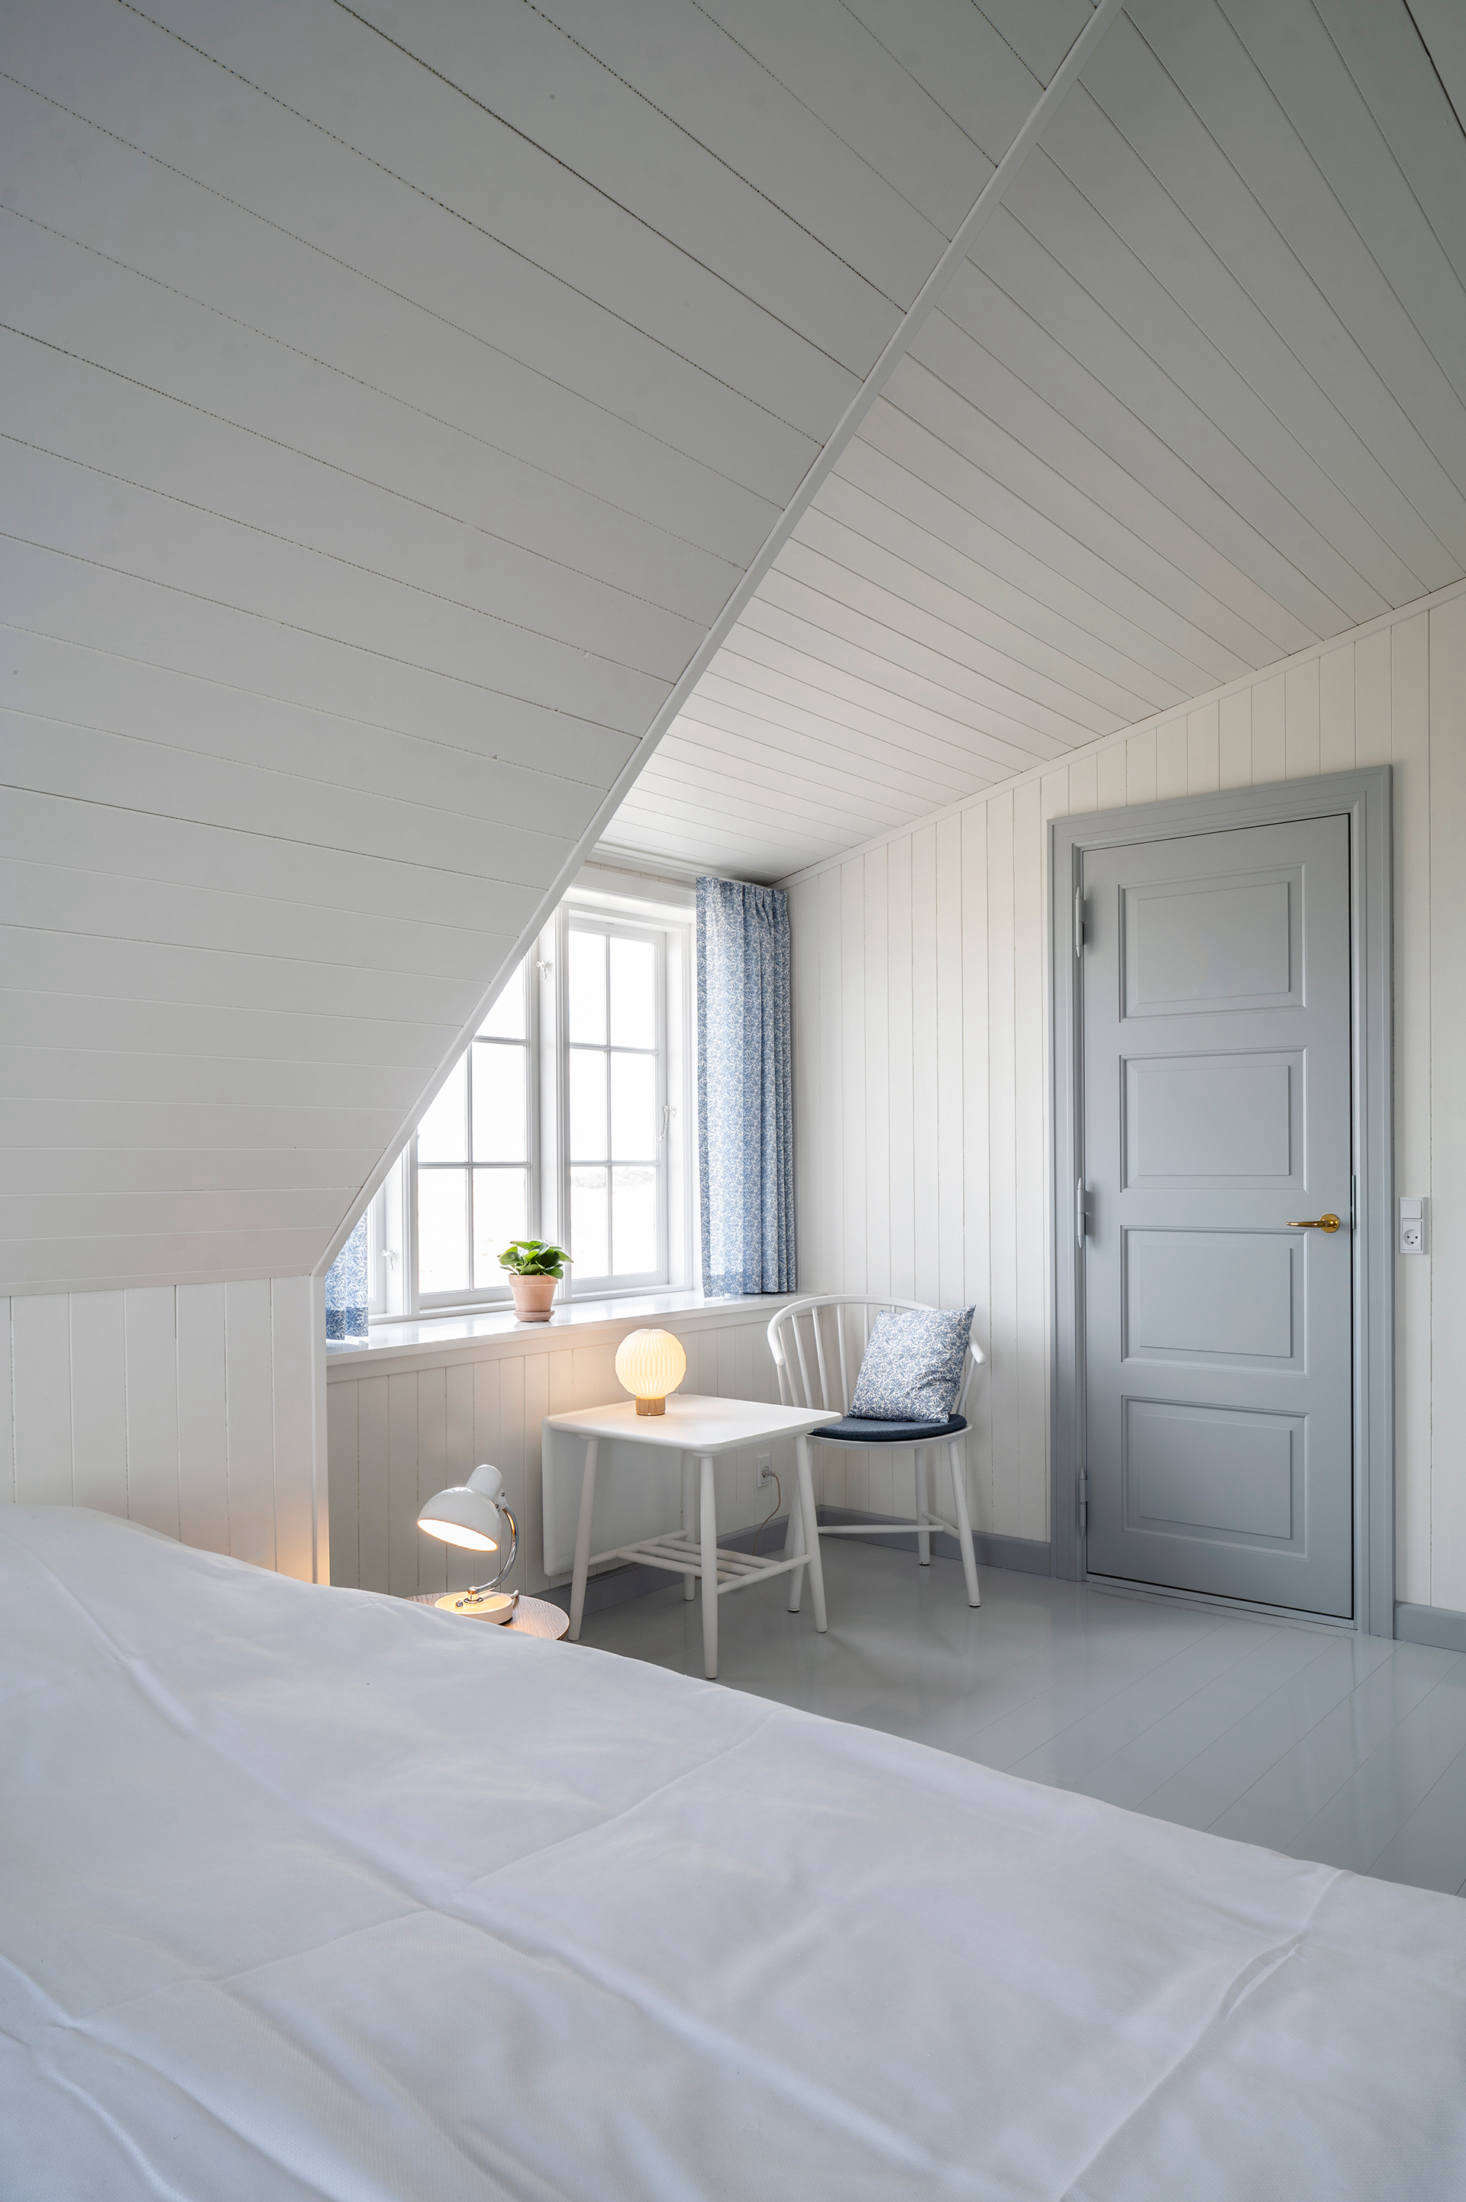 The blue and white palette continues in the guestrooms. One of the main upgrades of Svinkløv Badehotel